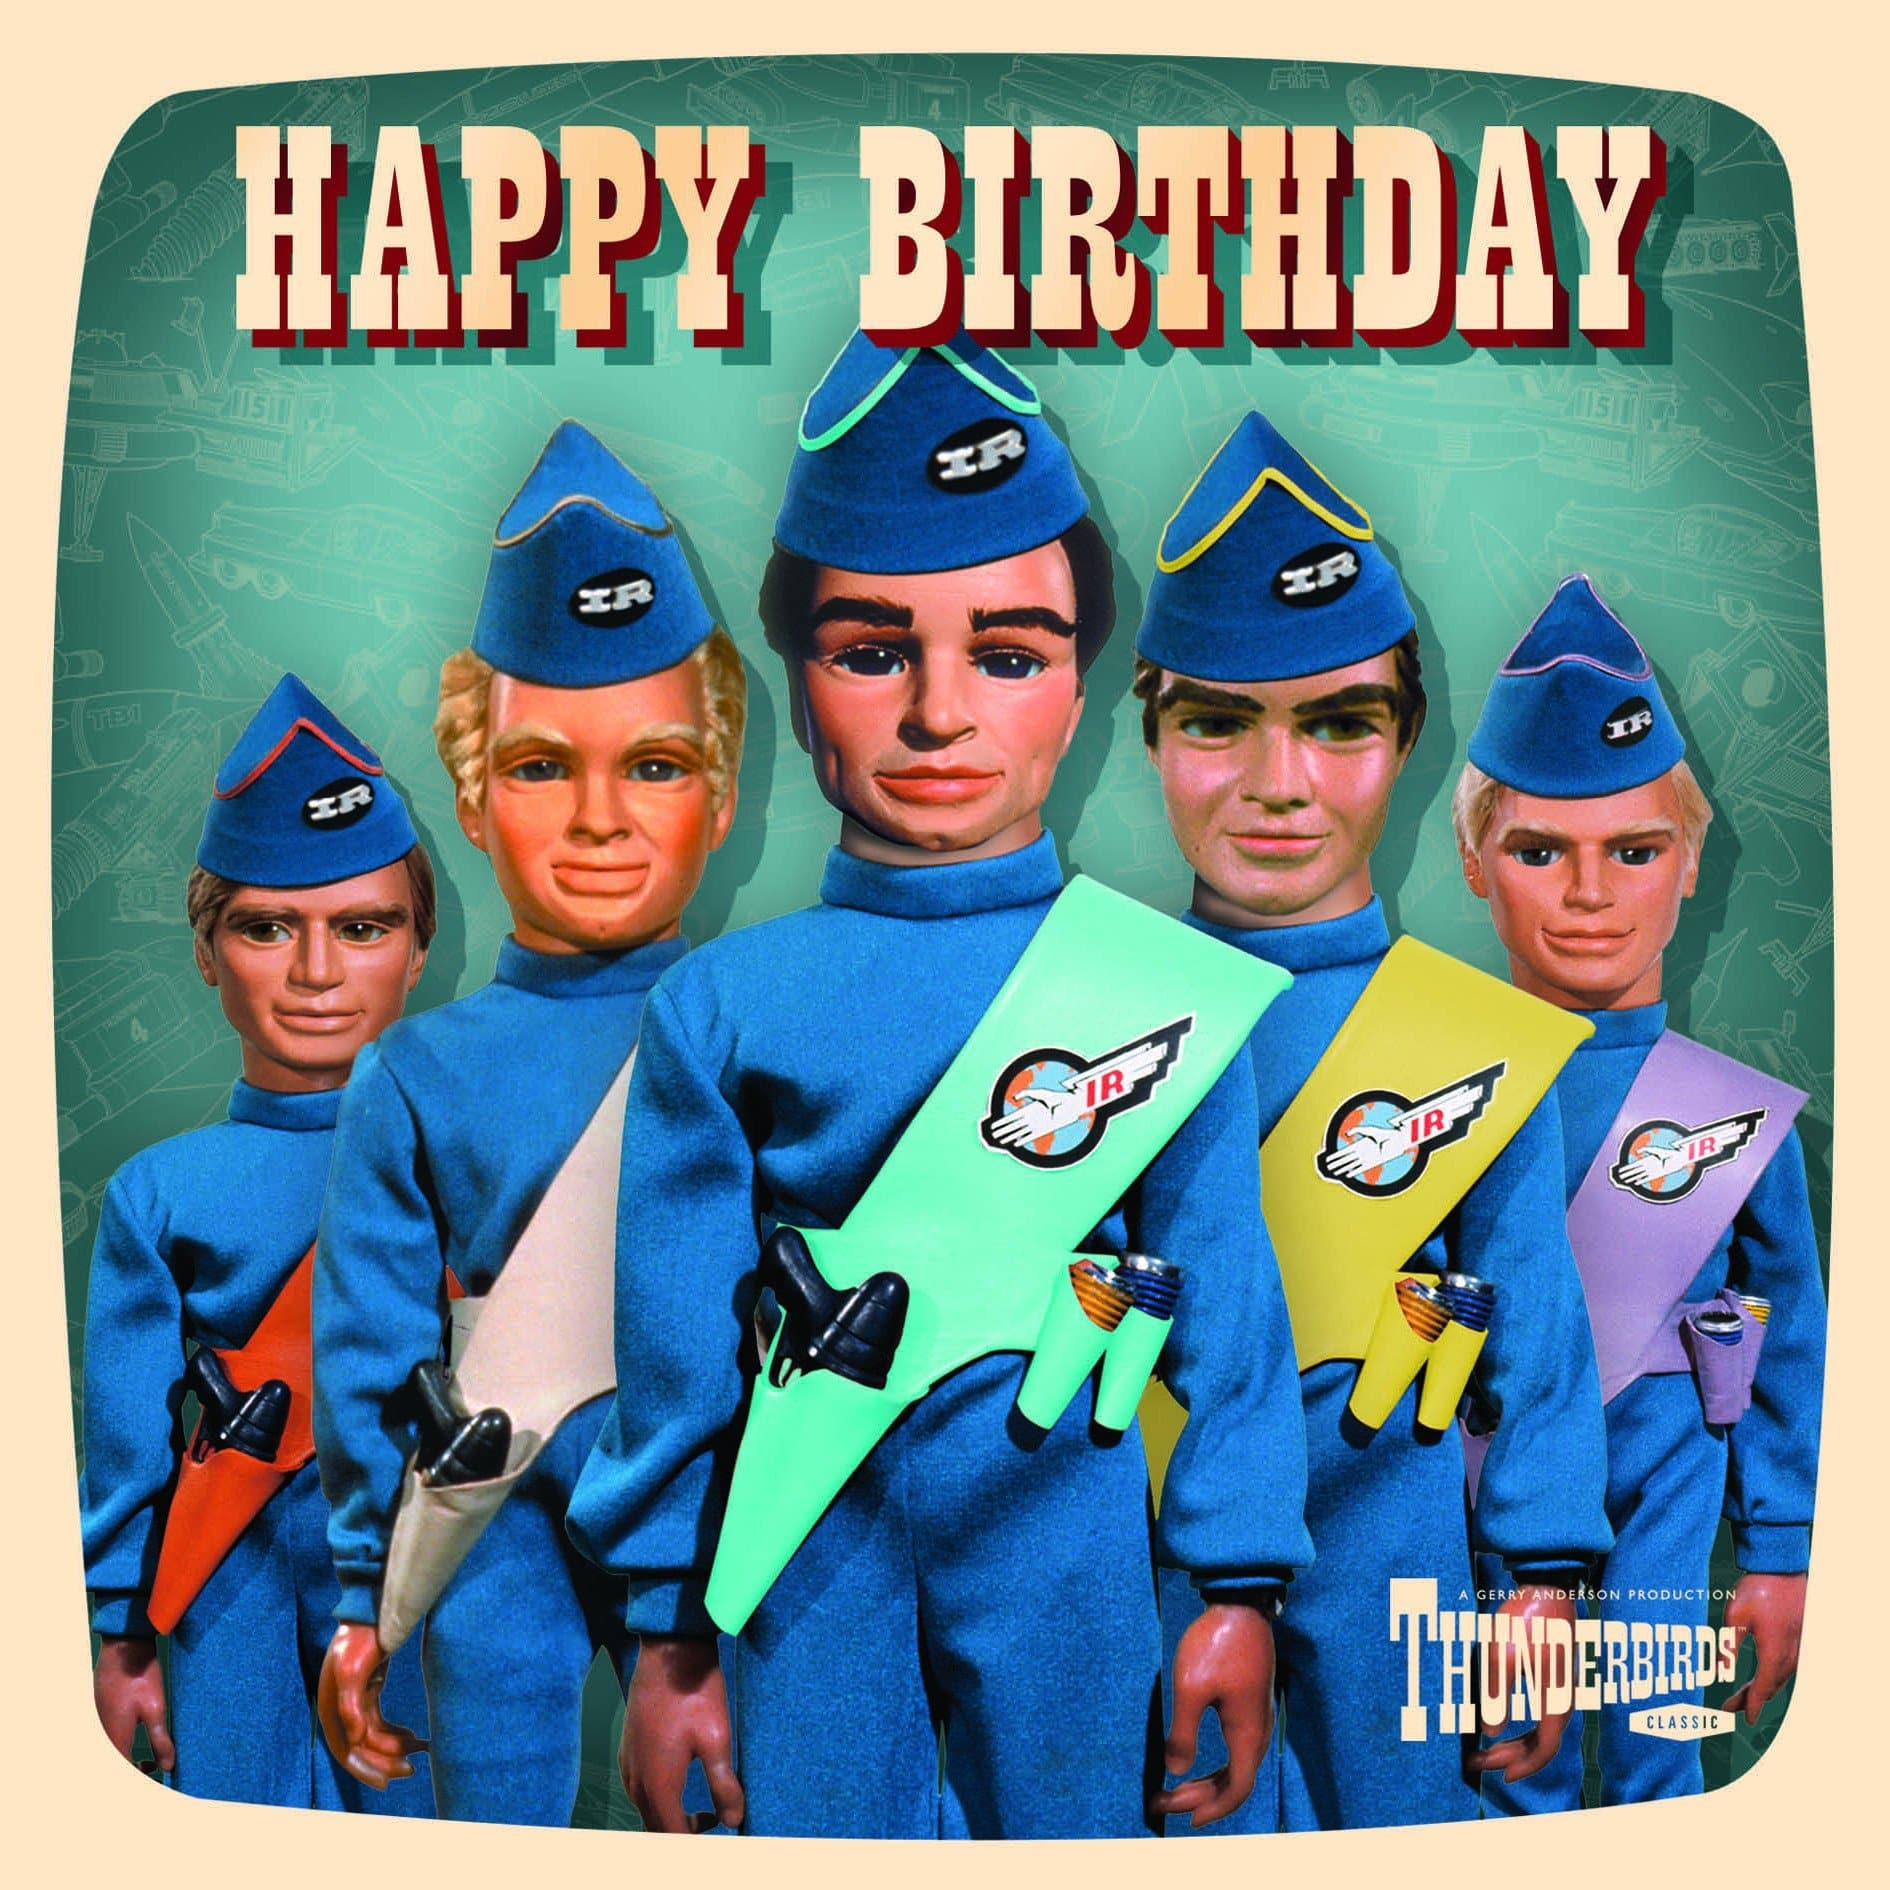 Thunderbirds Happy Birthday Card - Gerry Anderson Official